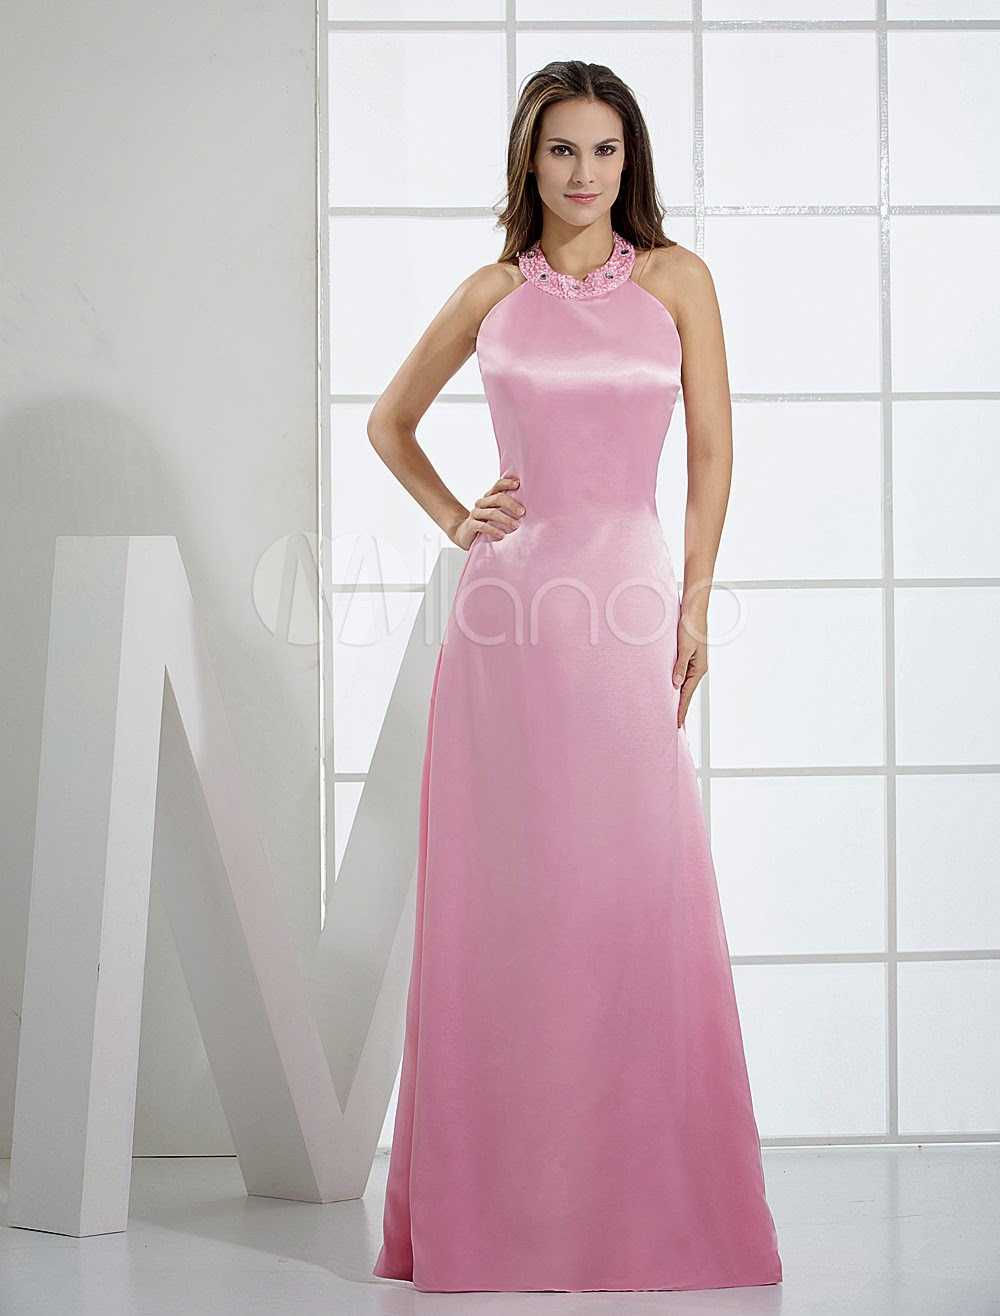 China Wholesale Dresses - Pink Halter Floor Length A-line Elastic Woven Satin Bridesmaid Dresses